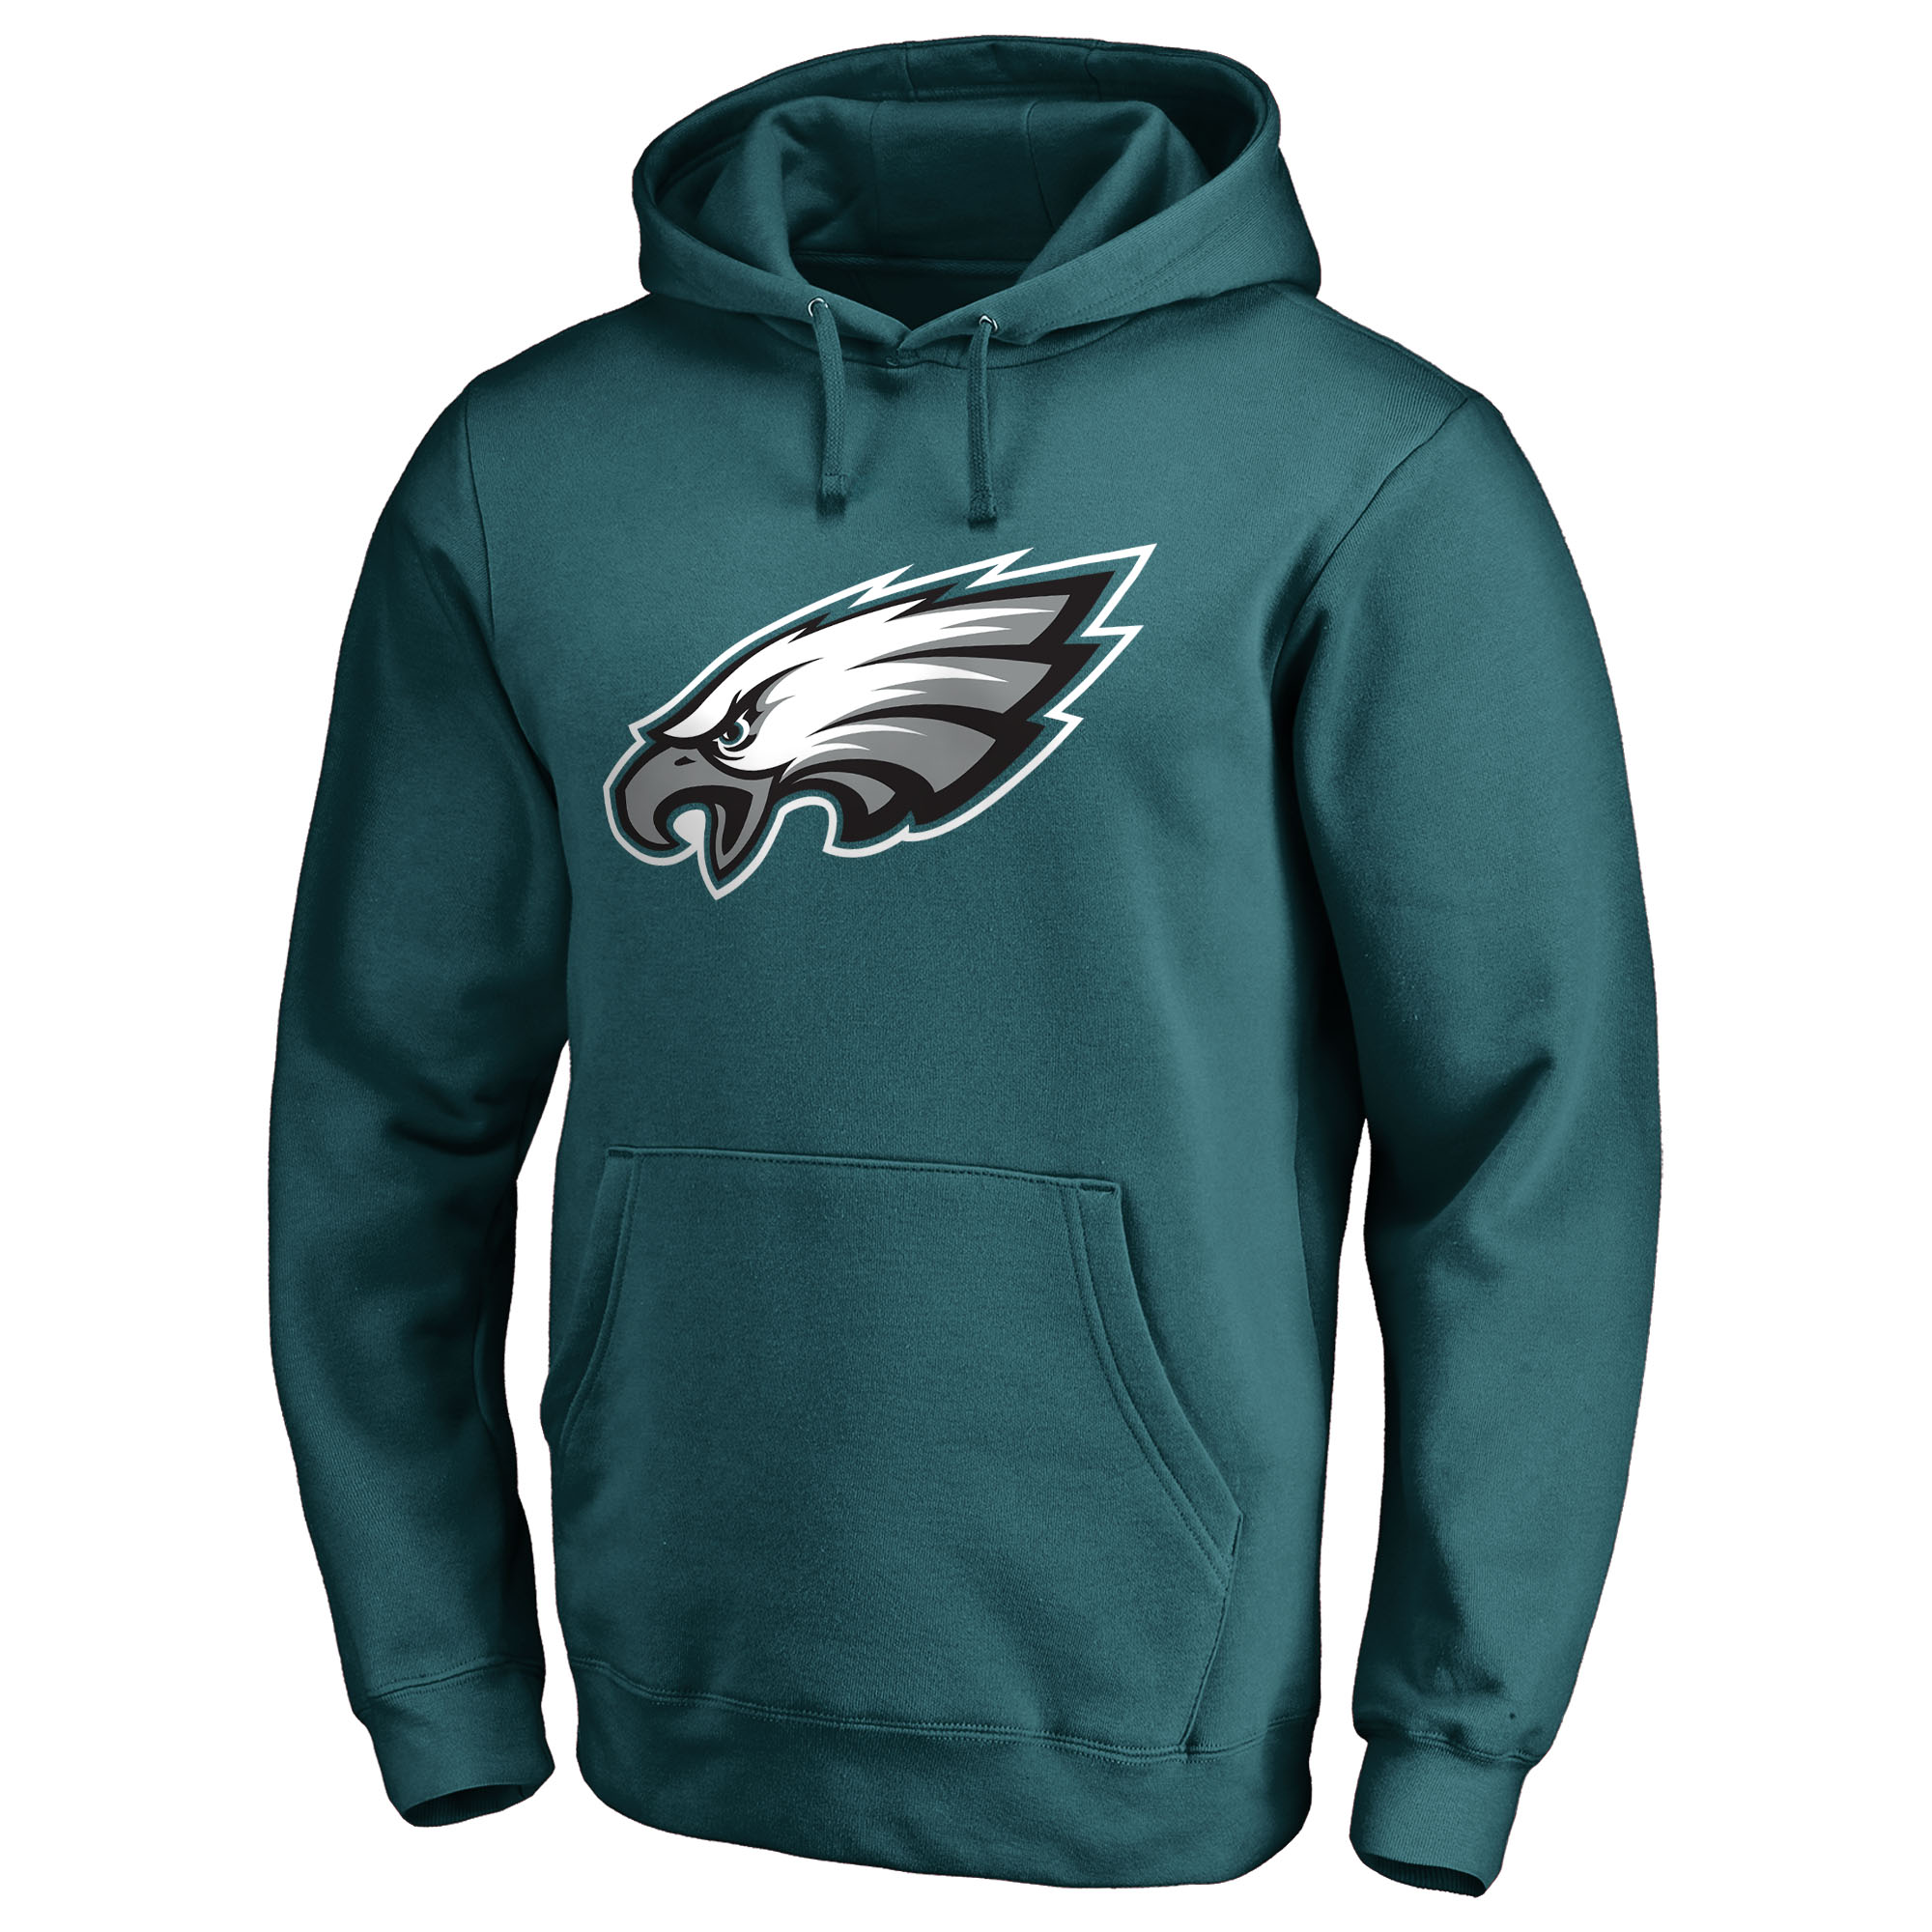 Nick Foles Philadelphia Eagles NFL Pro Line by Fanatics Branded Player Icon  Name   Number Pullover Hoodie - Midnight Green - Walmart.com 55b353125